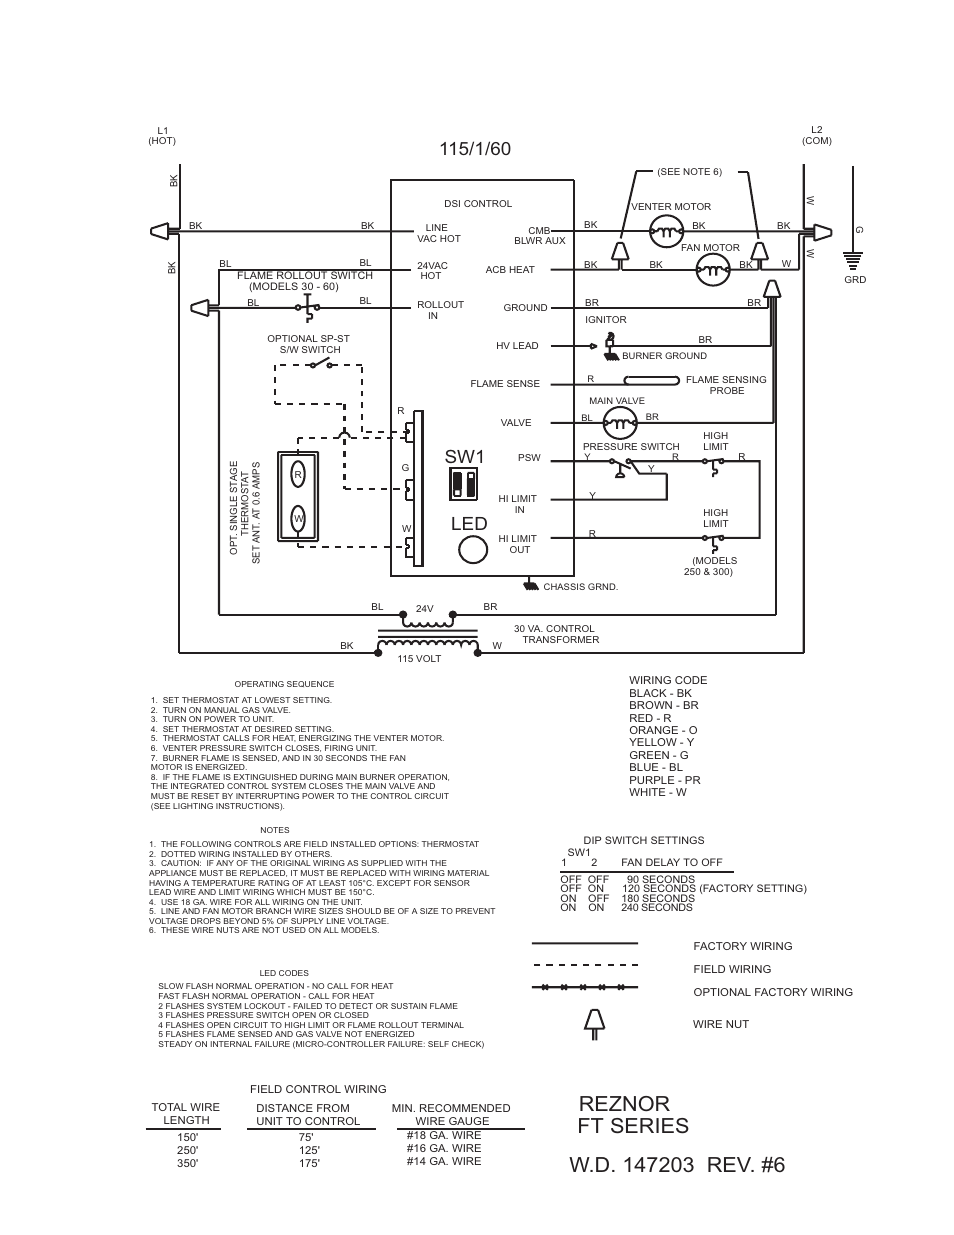 reznor ft unit installation manual page13?resized665%2C861 reznor heater wiring schematic efcaviation com dayton gas unit heater wiring diagram at alyssarenee.co